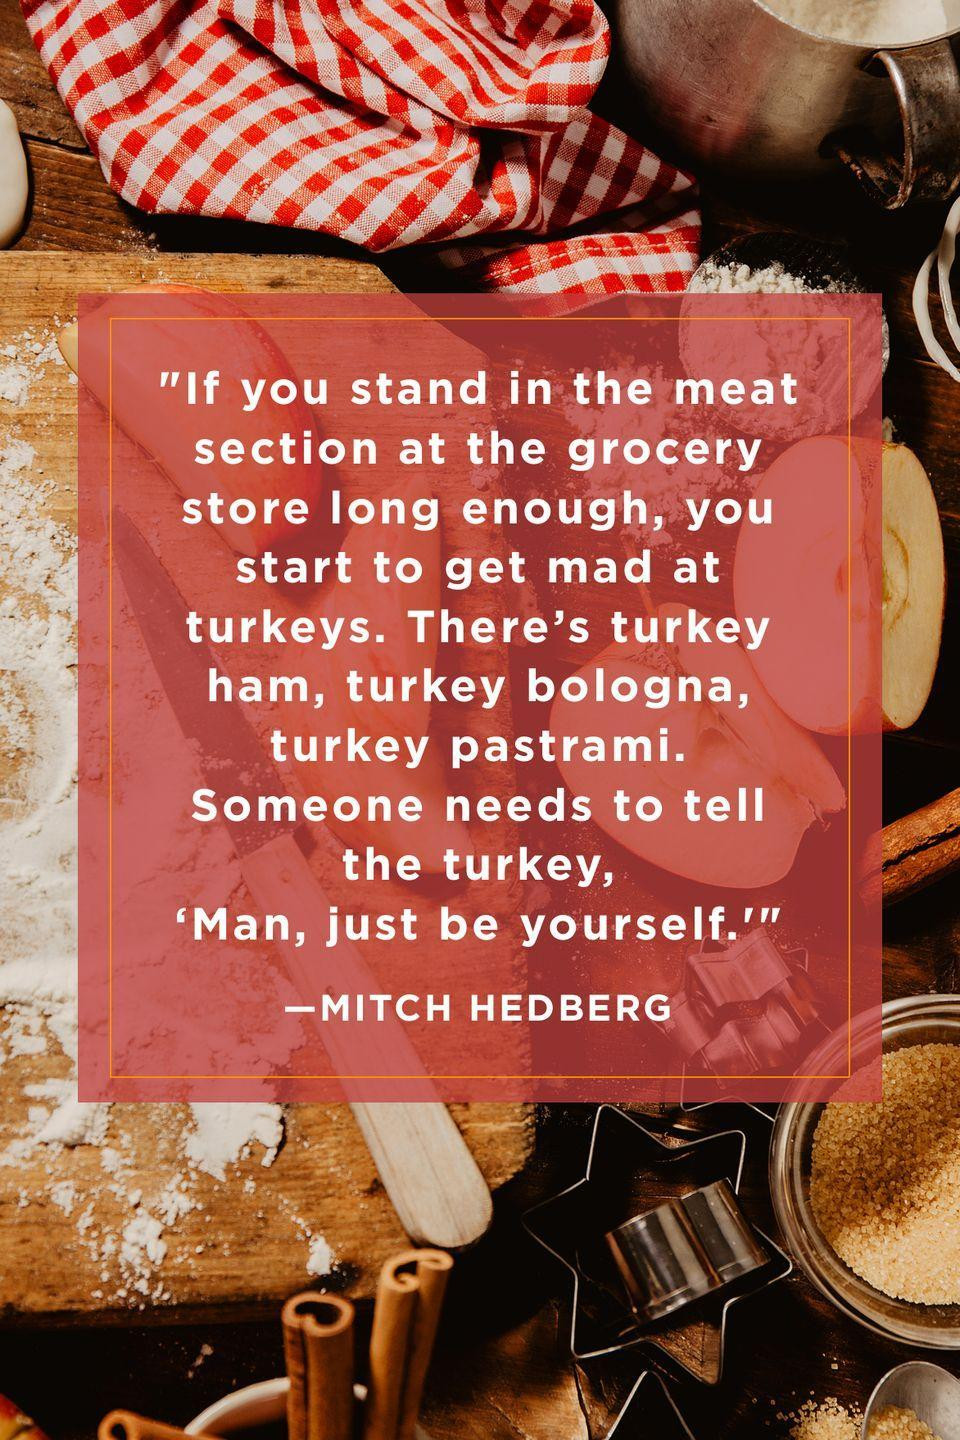 "<p>""If you stand in the meat section at the grocery store long enough, you start to get mad at turkeys. There's turkey ham, turkey bologna, turkey pastrami. Someone needs to tell the turkey, 'Man, just be yourself.'""</p>"